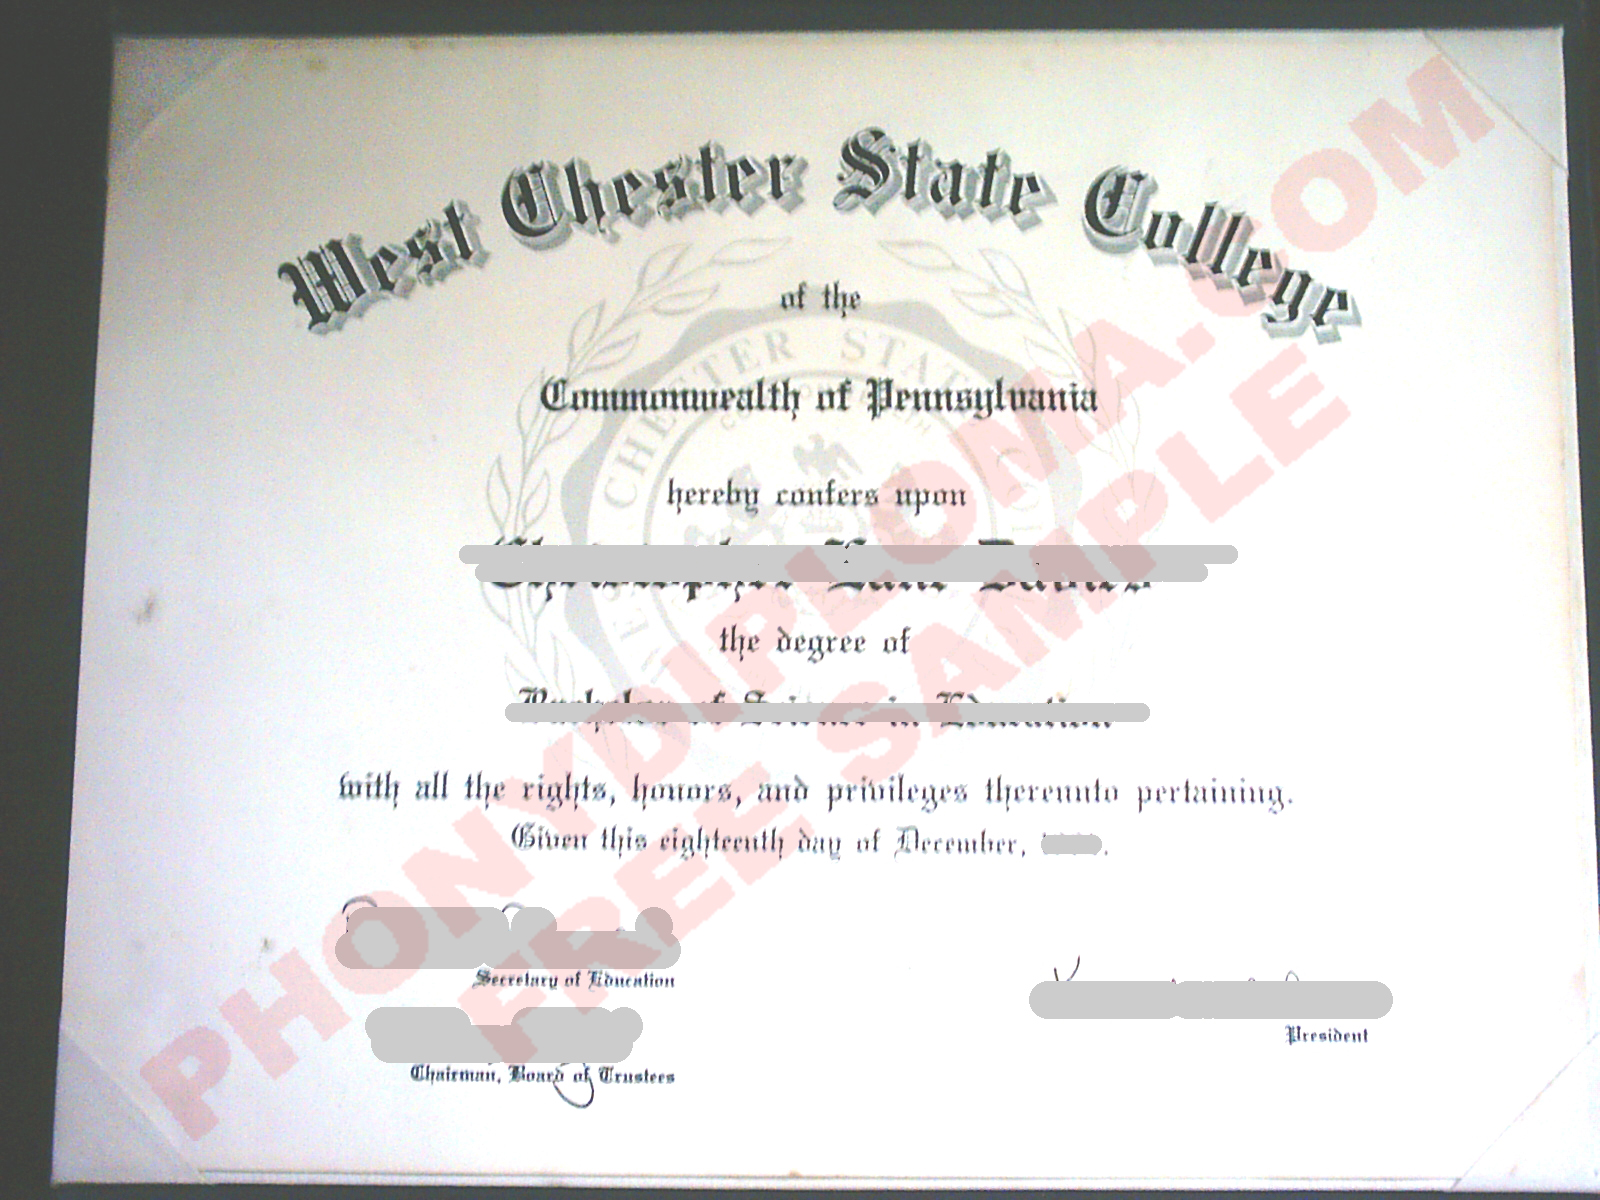 West Chester State College Free Sample From Phonydiploma